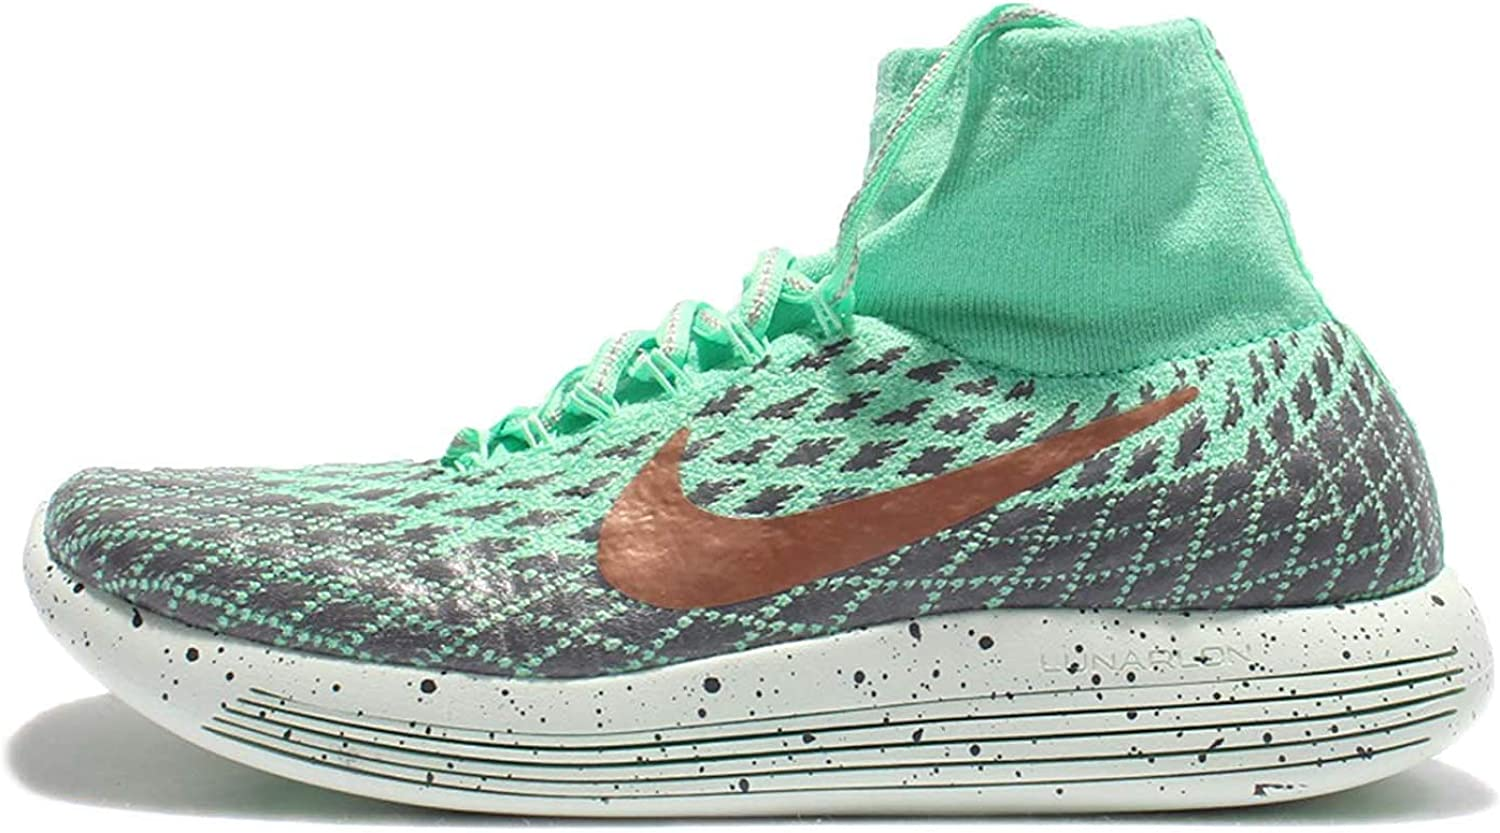 Nike Womens Lunarepic Flyknit Fabric Low Top Pull On Running, Green, Size 9.0